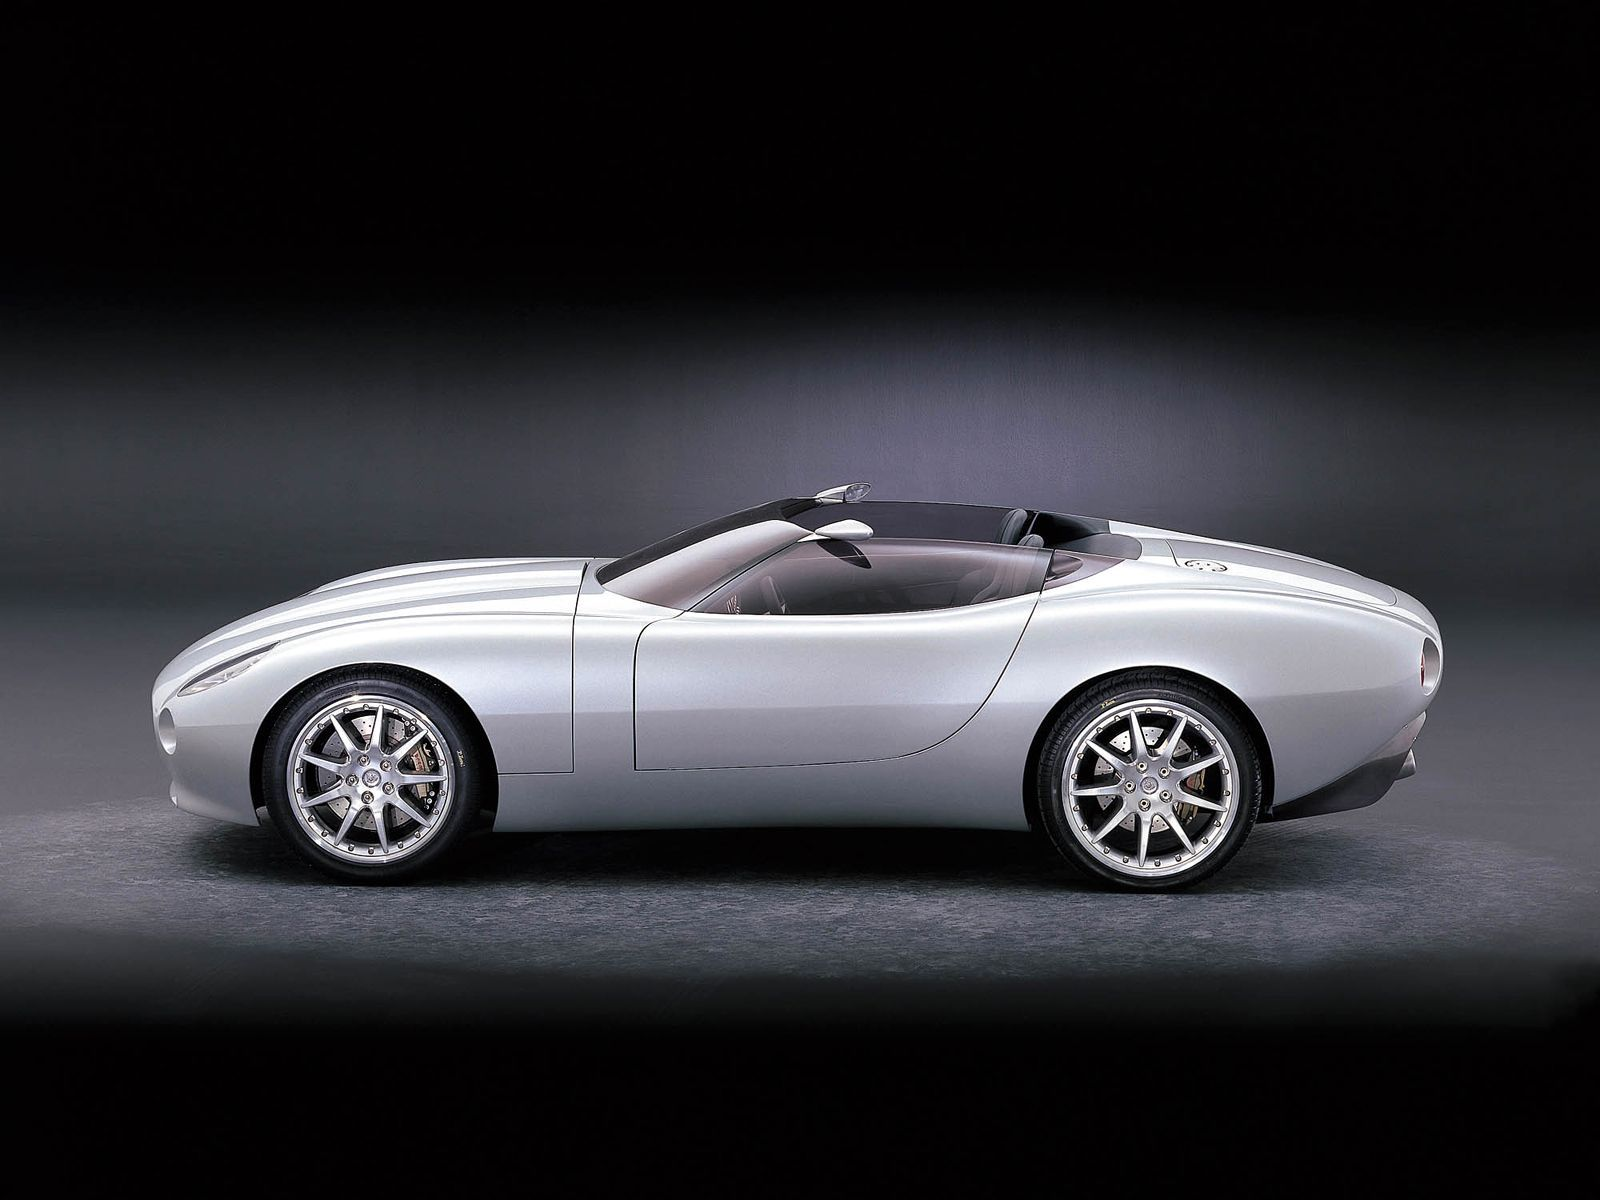 Jaguar s f type concept roadster was unveiled at the north american international auto show in detroit on january 11 2000 inspired by the xk180 concept car